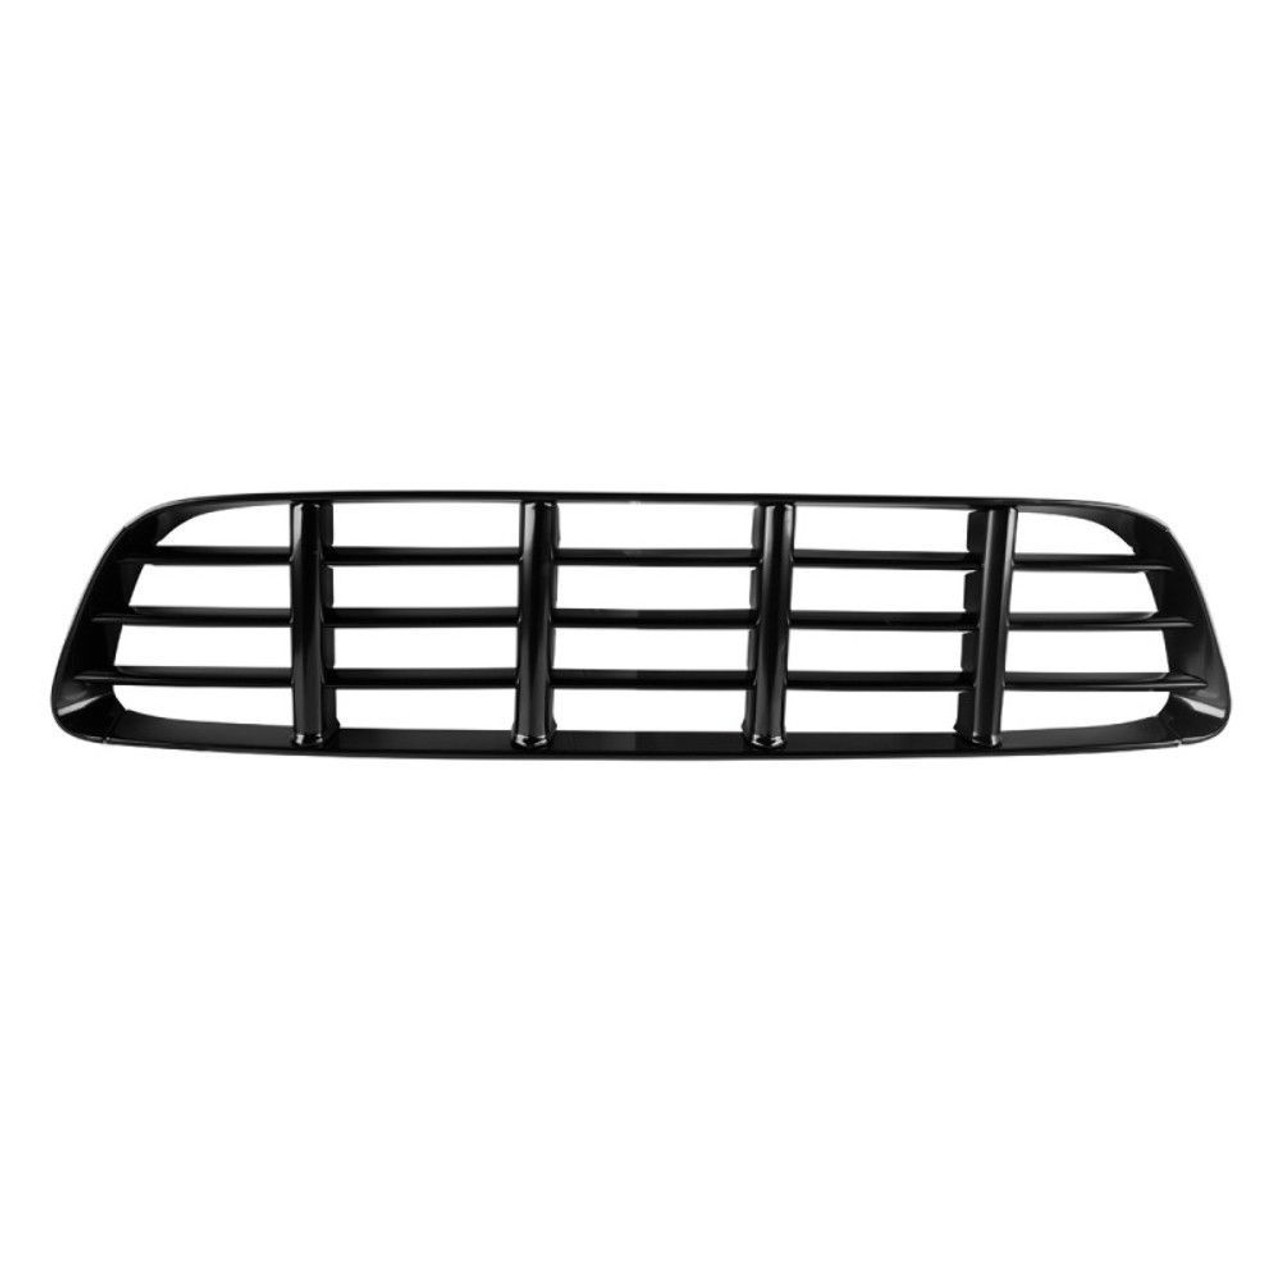 1955-56 Chevy Truck Front Grille Black (Painted)